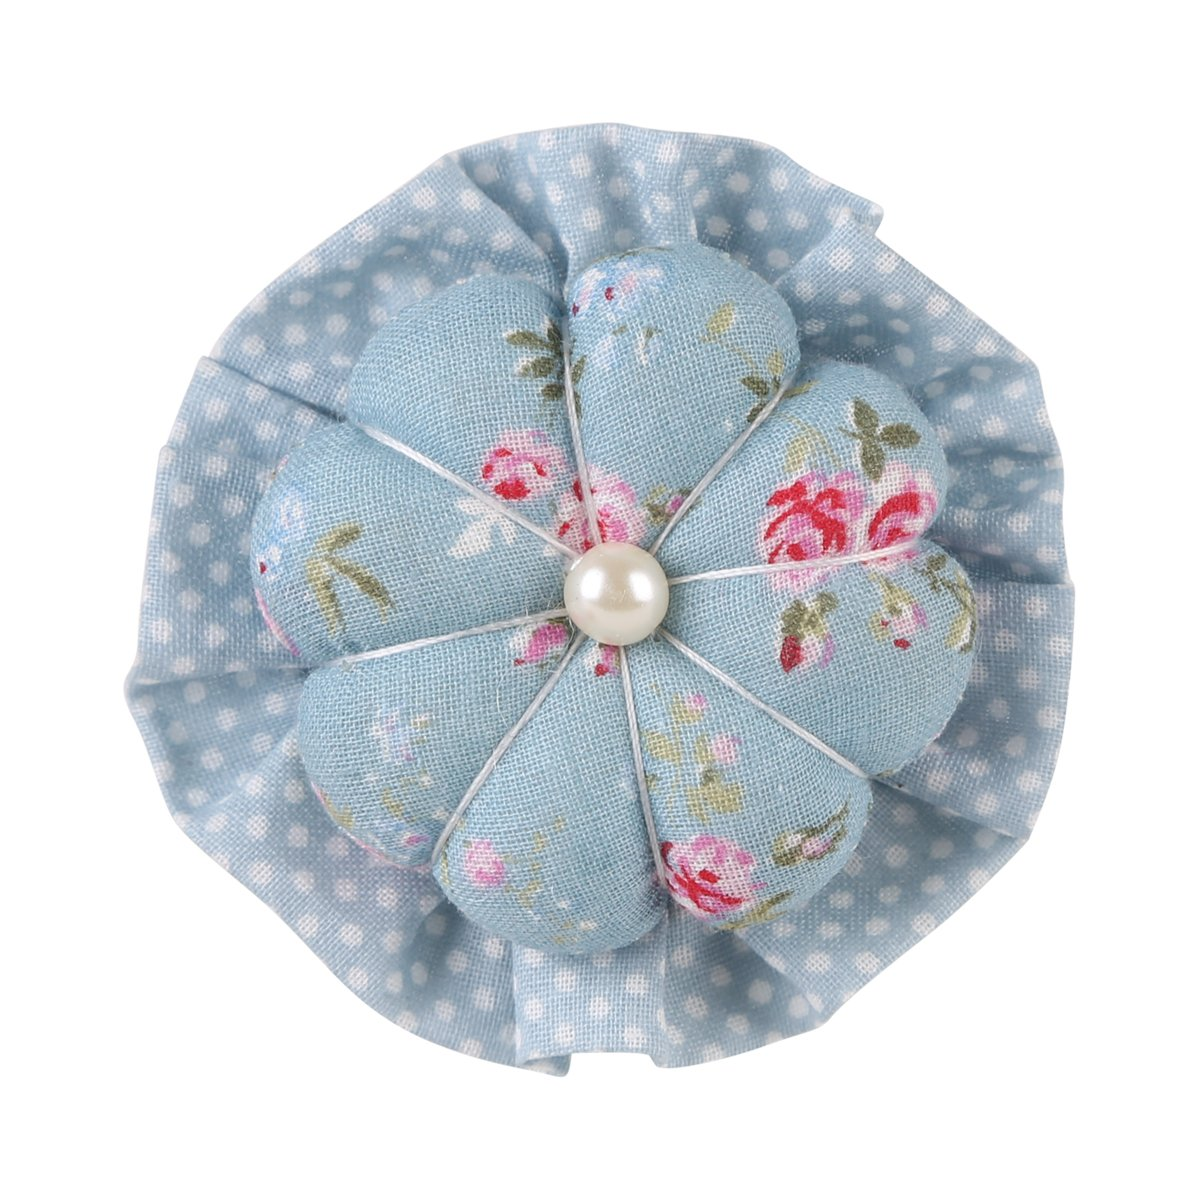 NEOVIVA Wrist Wearable Pincushions for Sewing and Quilting, Style Blossom, Pack of 2, Floral Blue Ocean